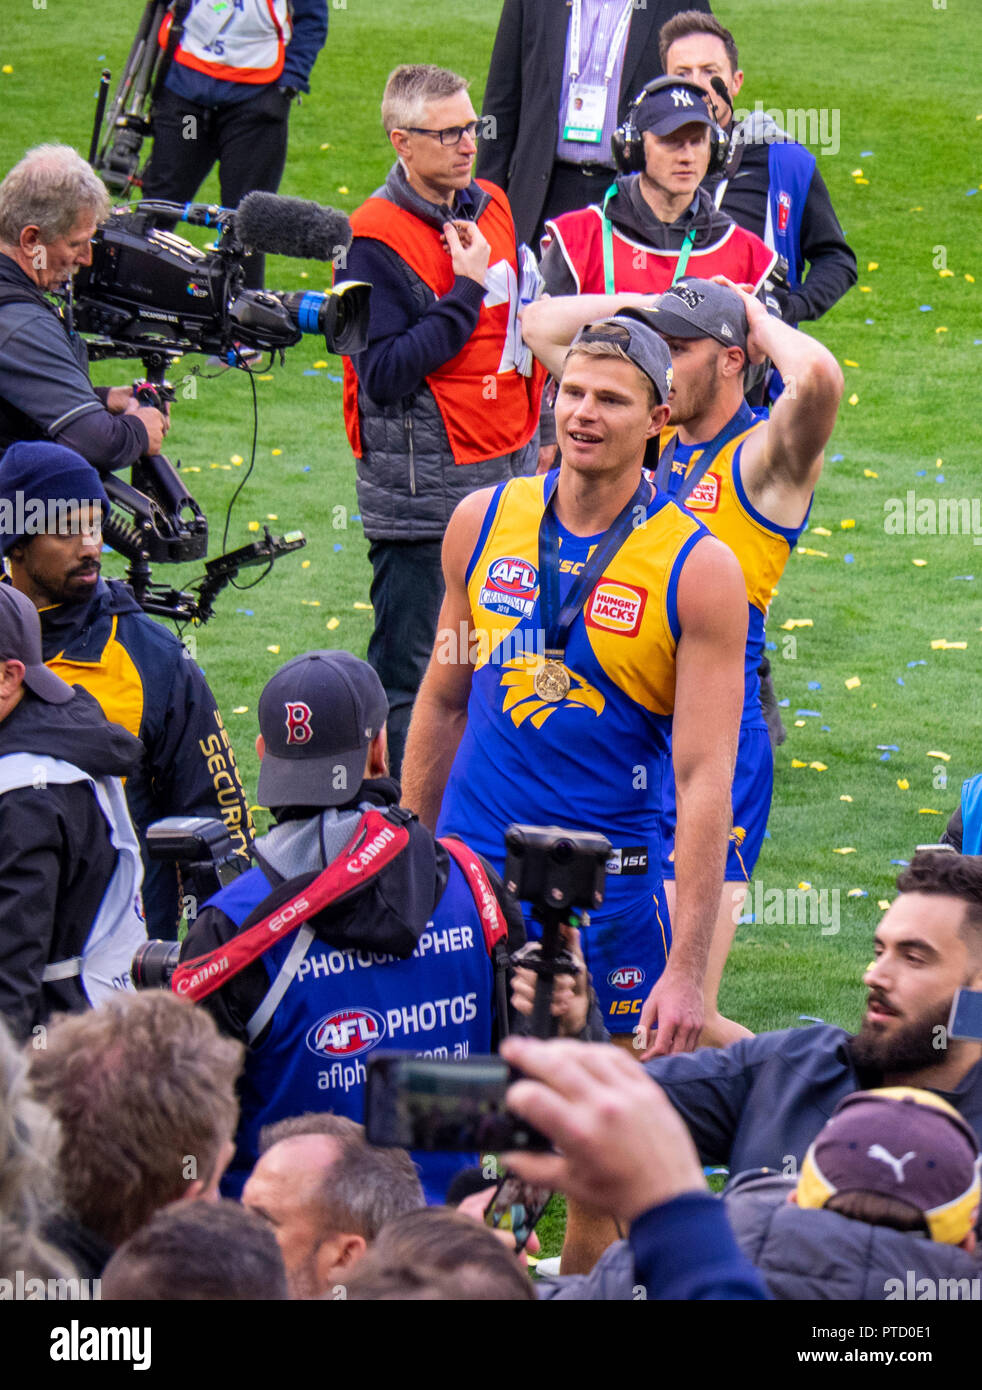 West Coast Eagles premiership player Nathan Vardy celebrating after 2018 AFL Grand Final at MCG Melbourne Victoria Australia. - Stock Image